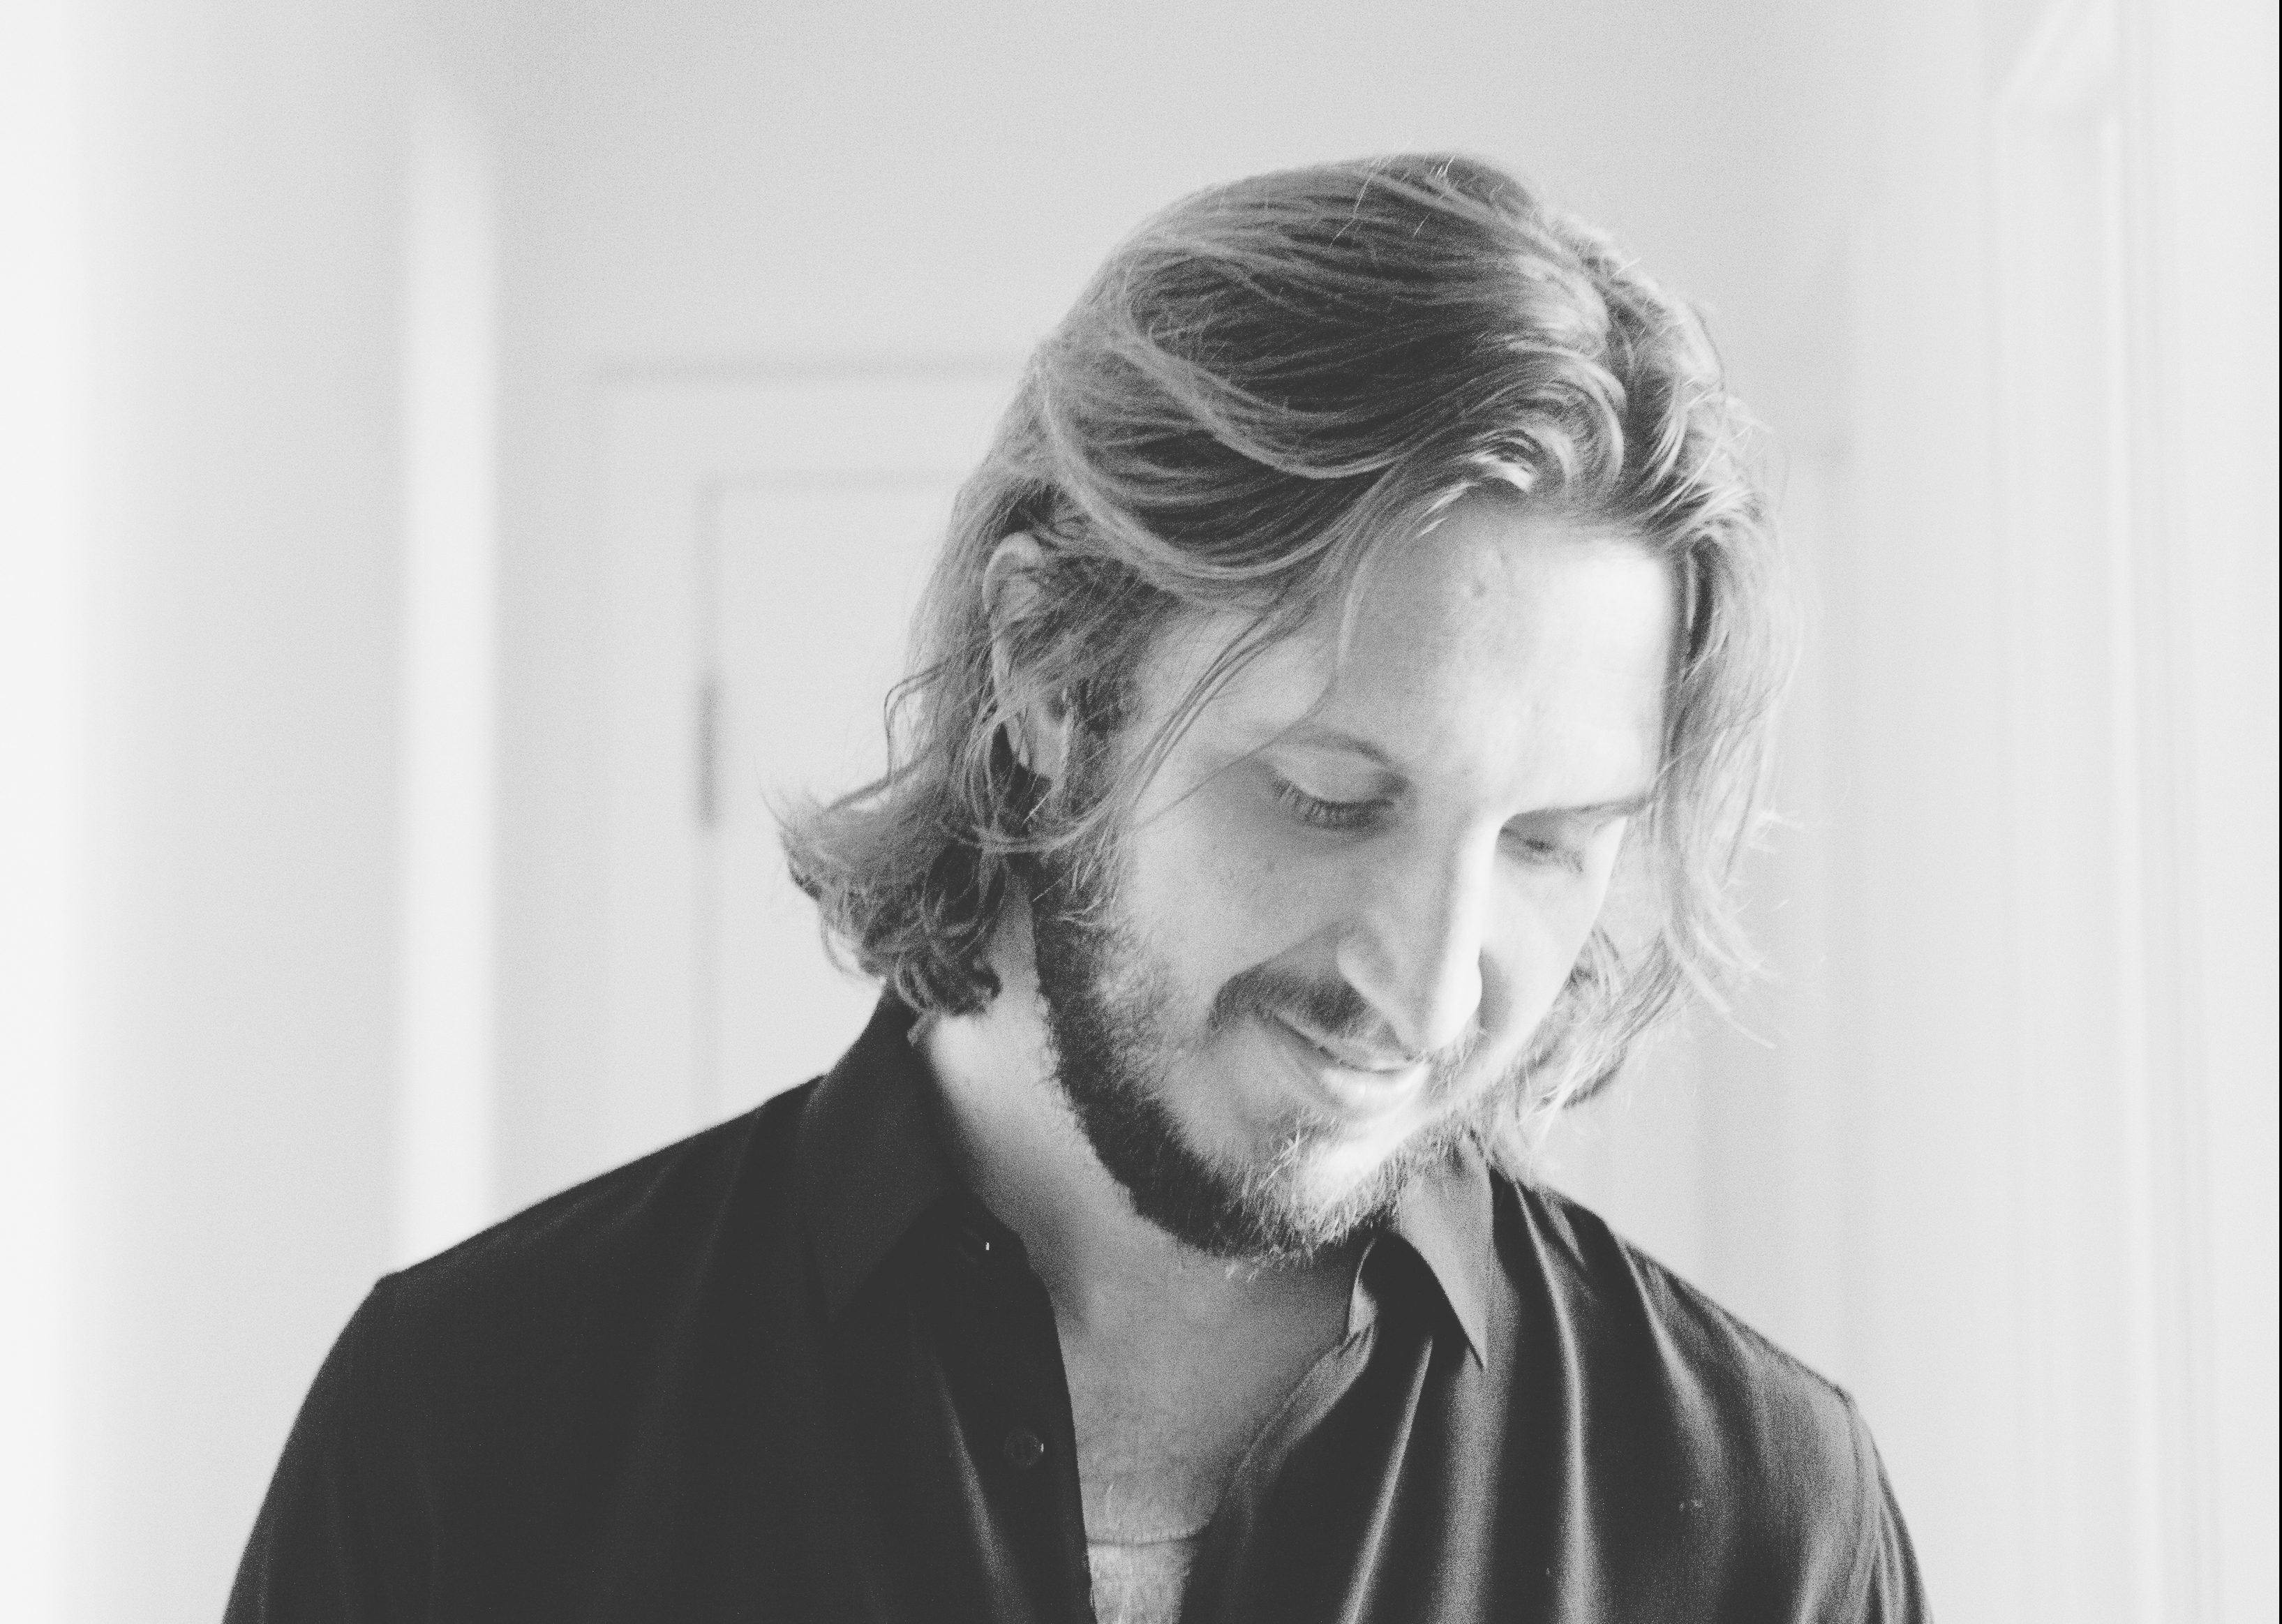 Emile Haynie is a Grammy-winning producer and songwriter who grew up on Buffalo's West Side.